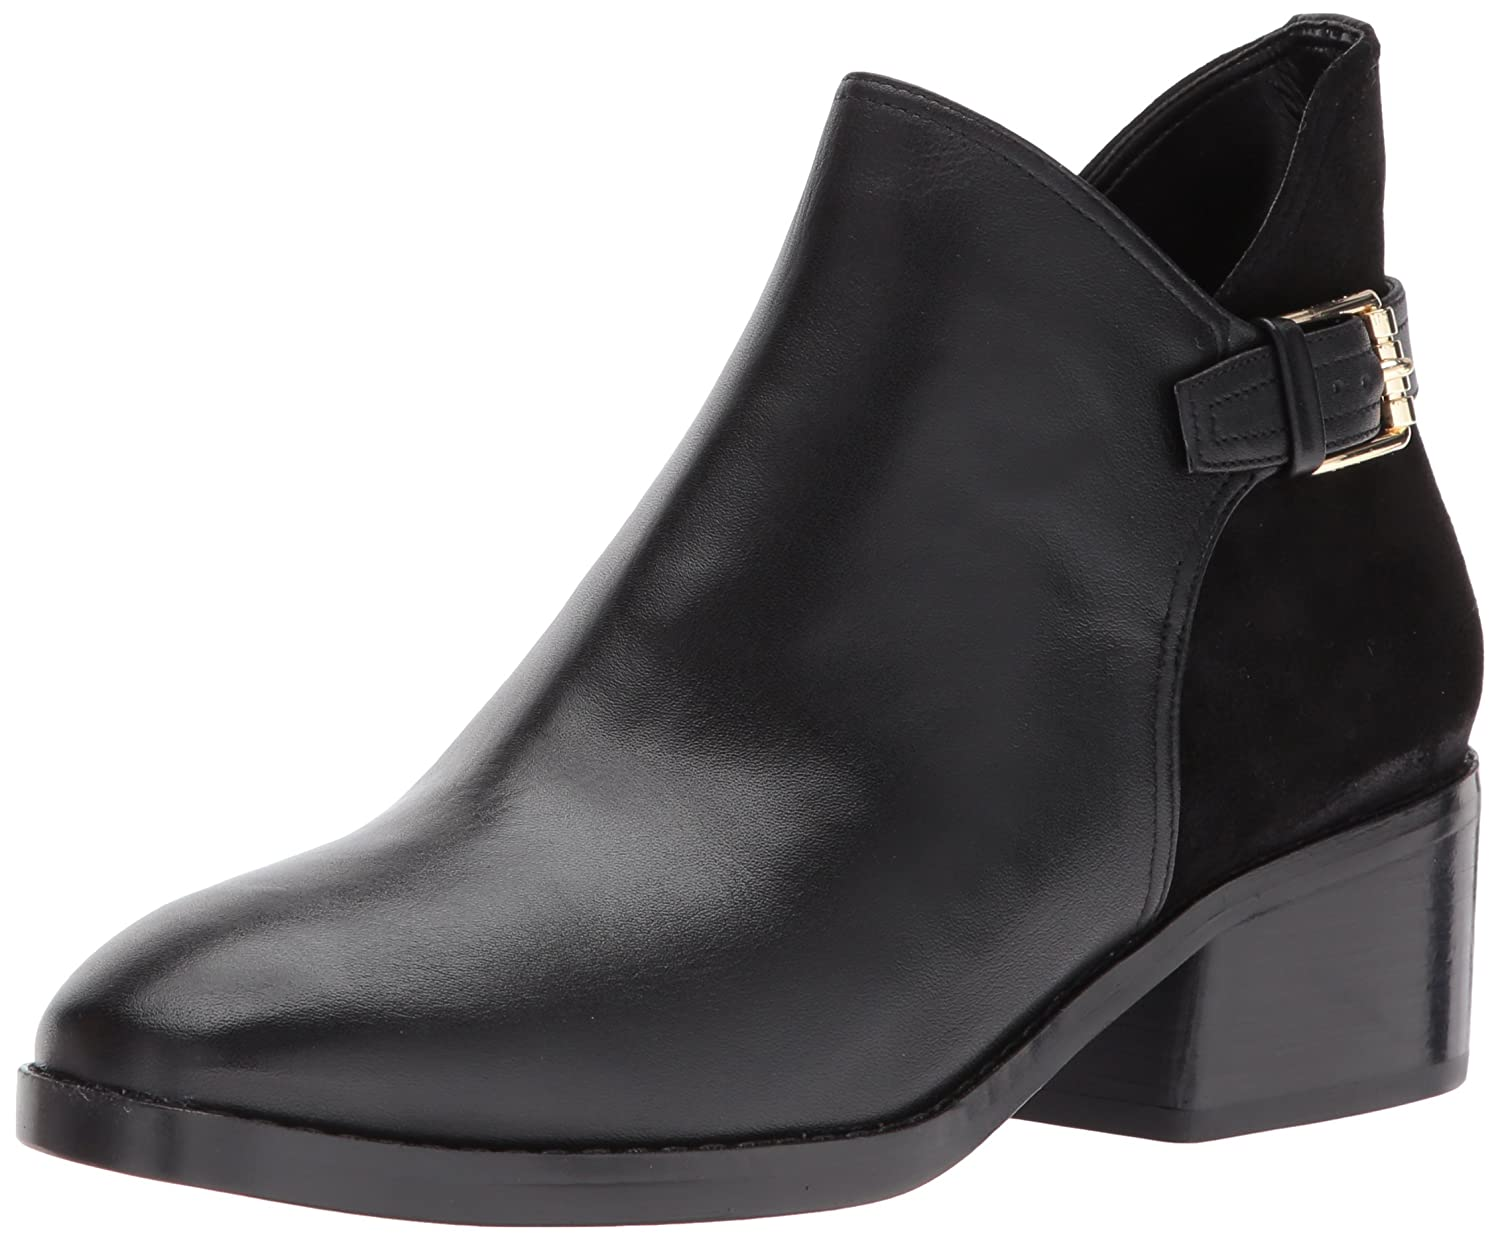 Cole Haan Women's Althea Bootie B01MYBNU6Q 7.5 B(M) US|Black